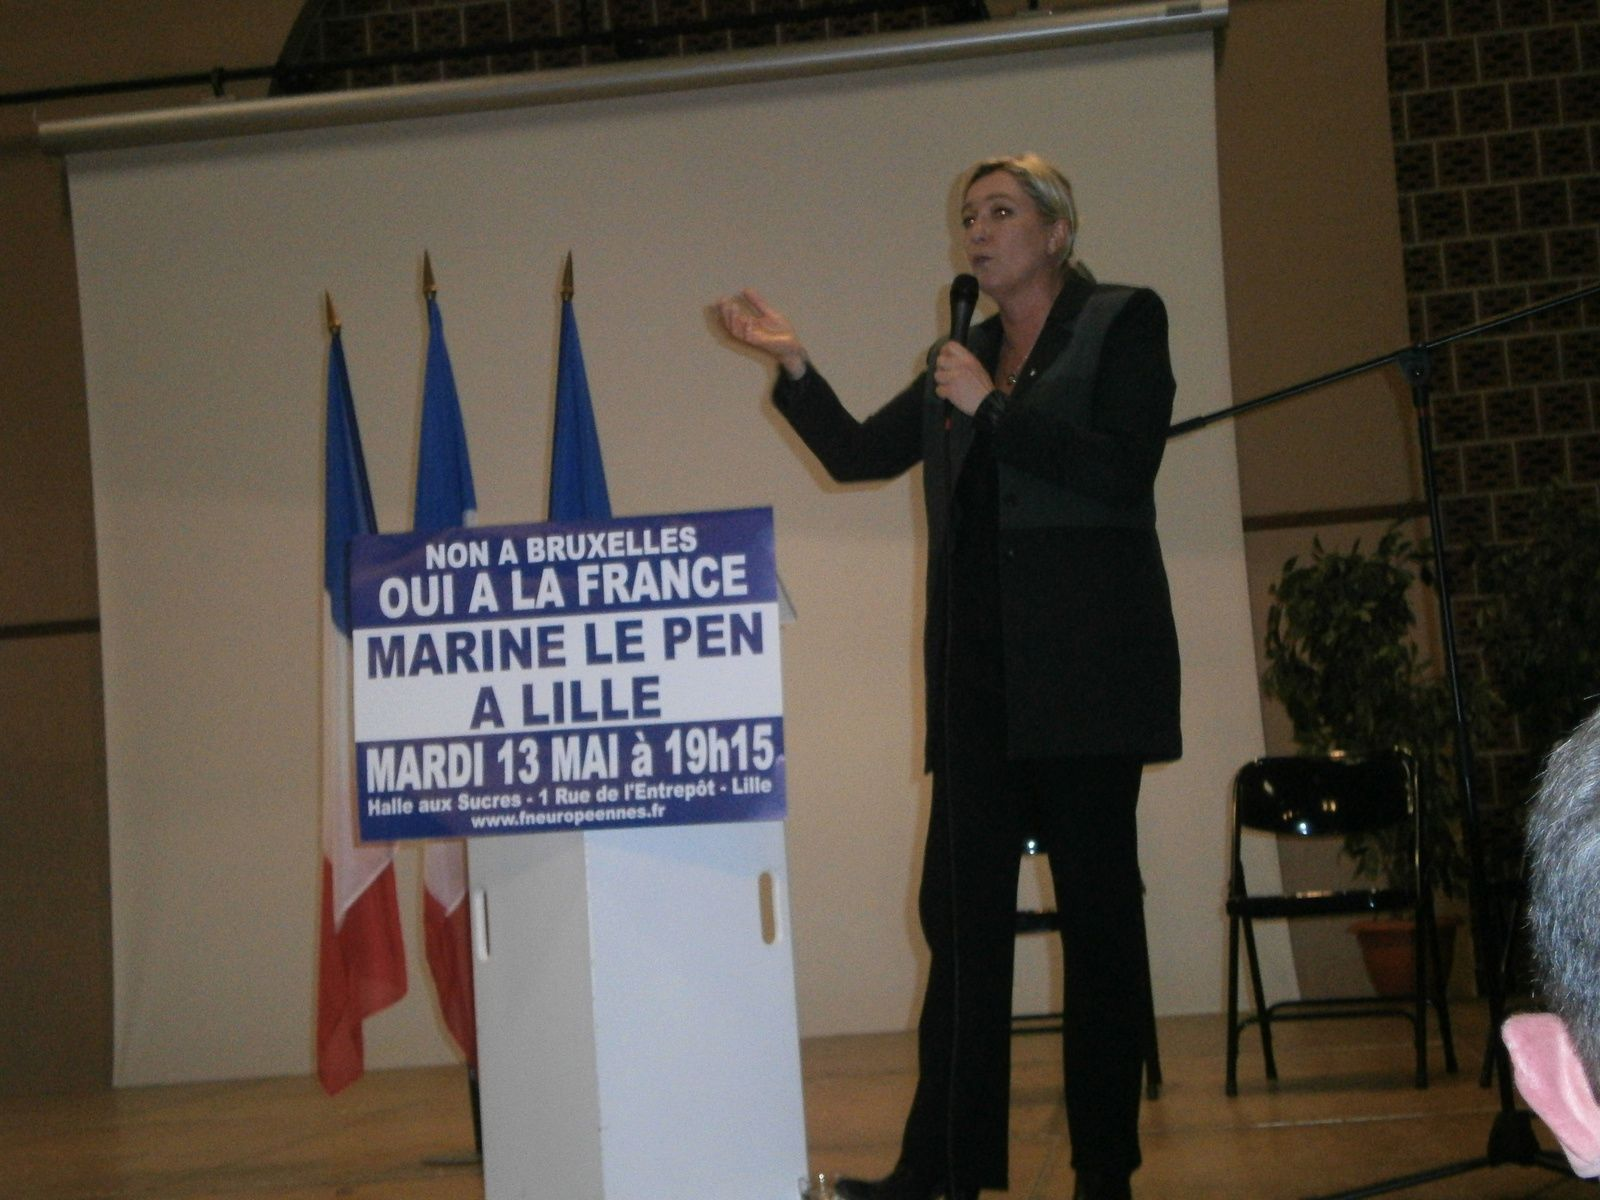 Marine LE PEN en meeting à Lille